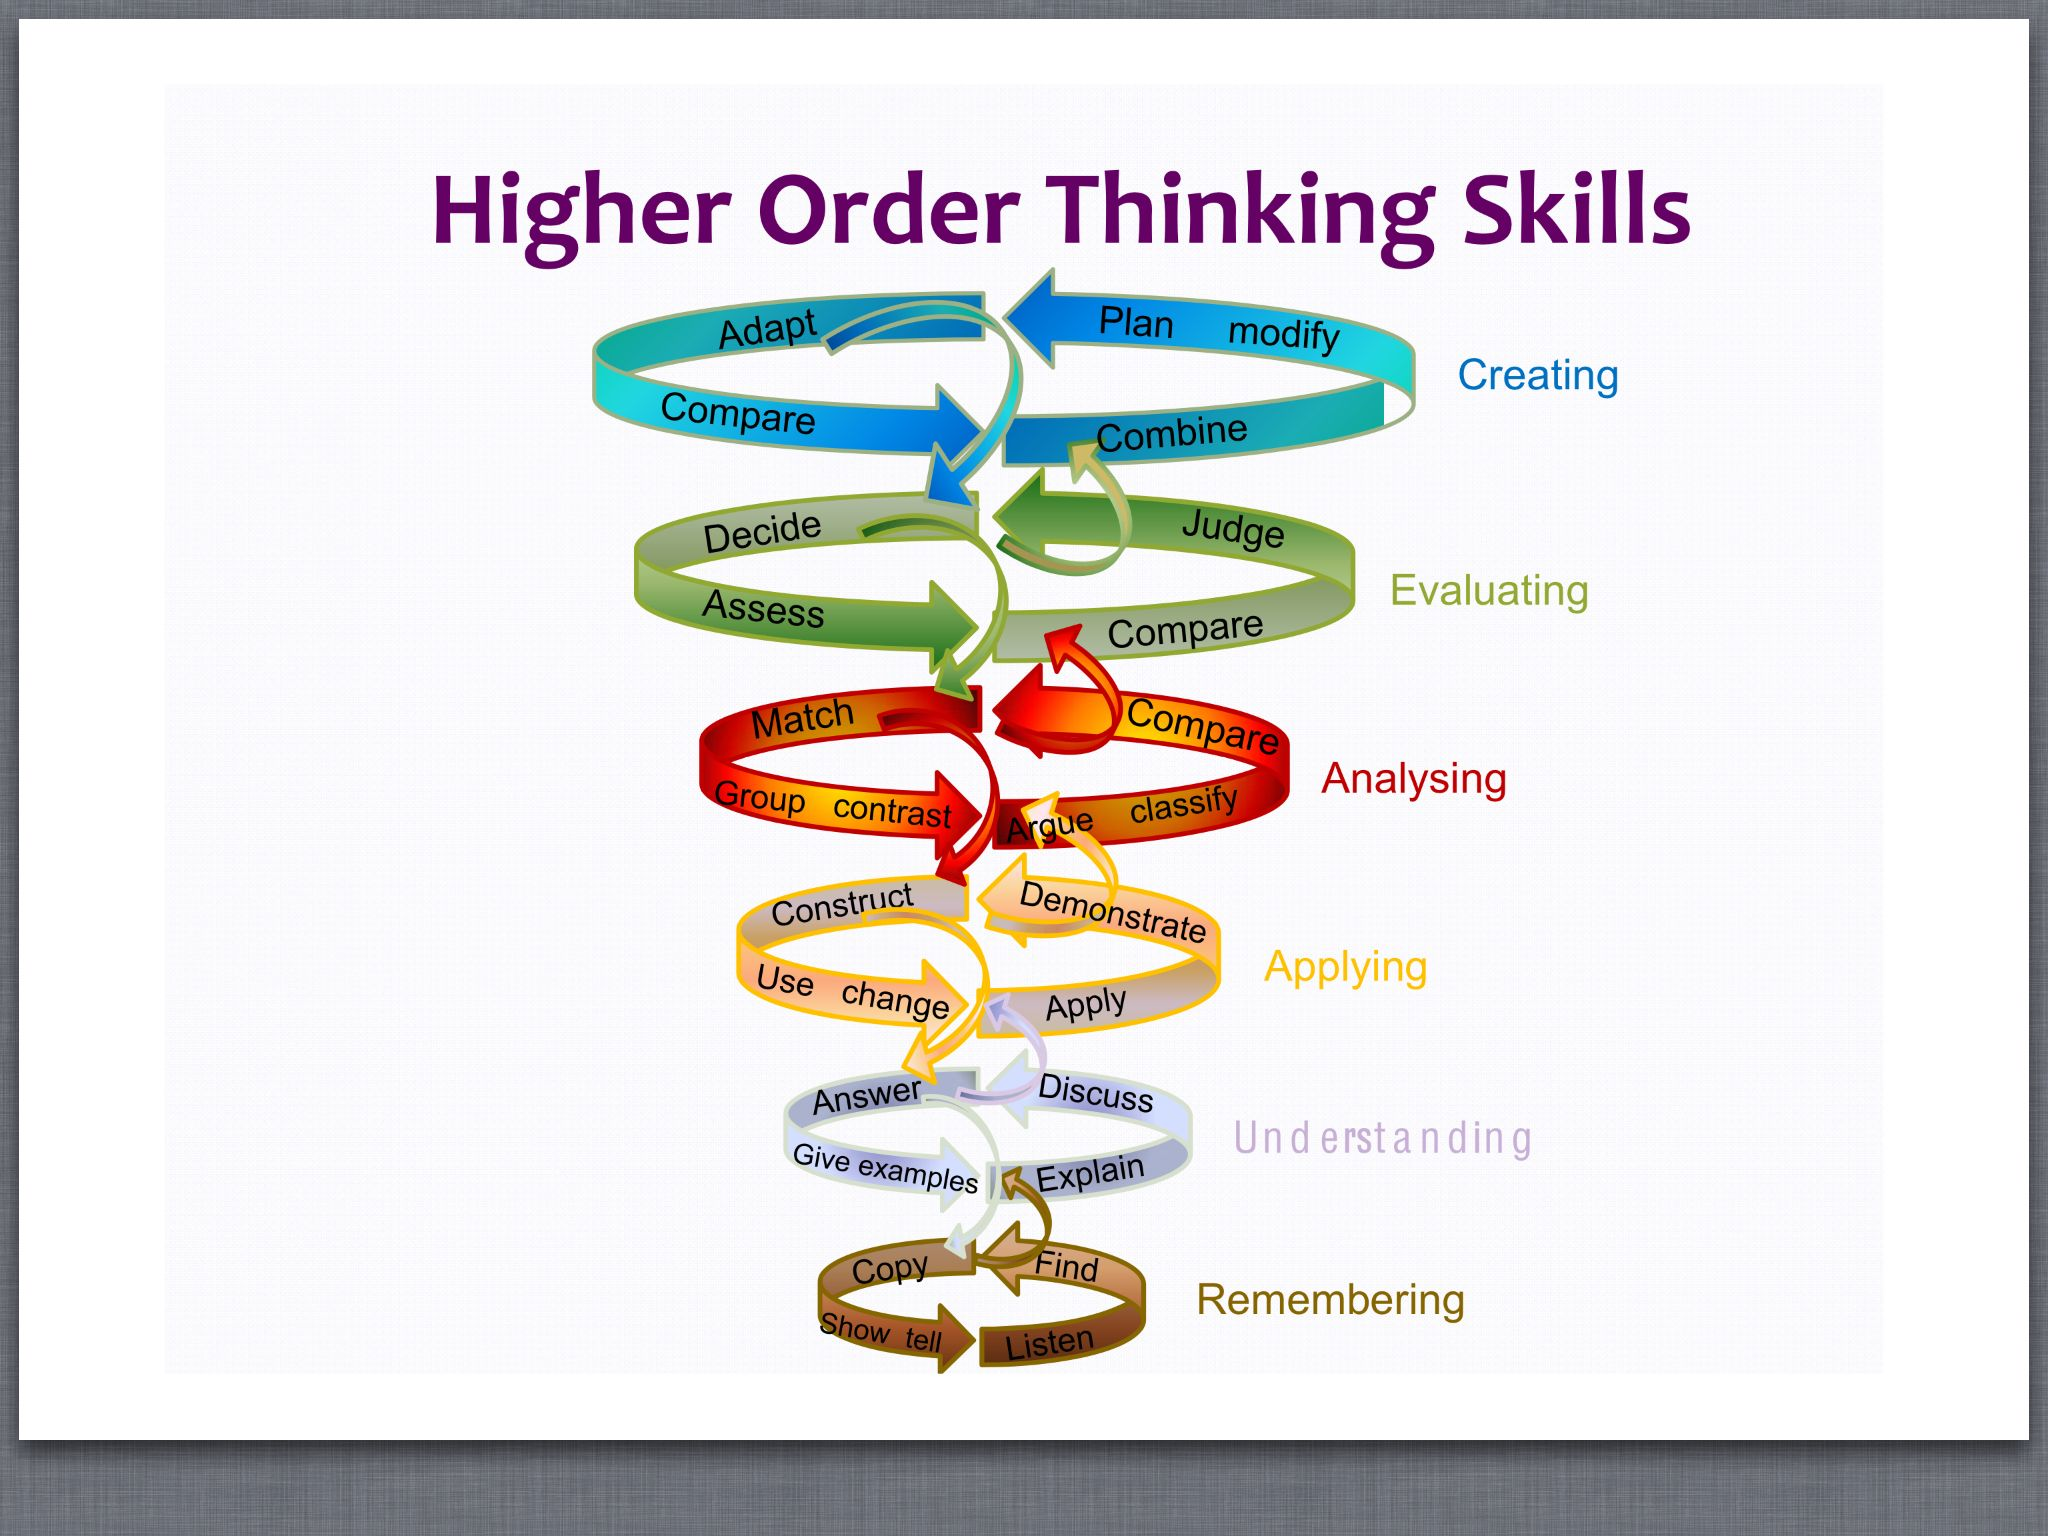 Higher order thinking skills template Fall 2013